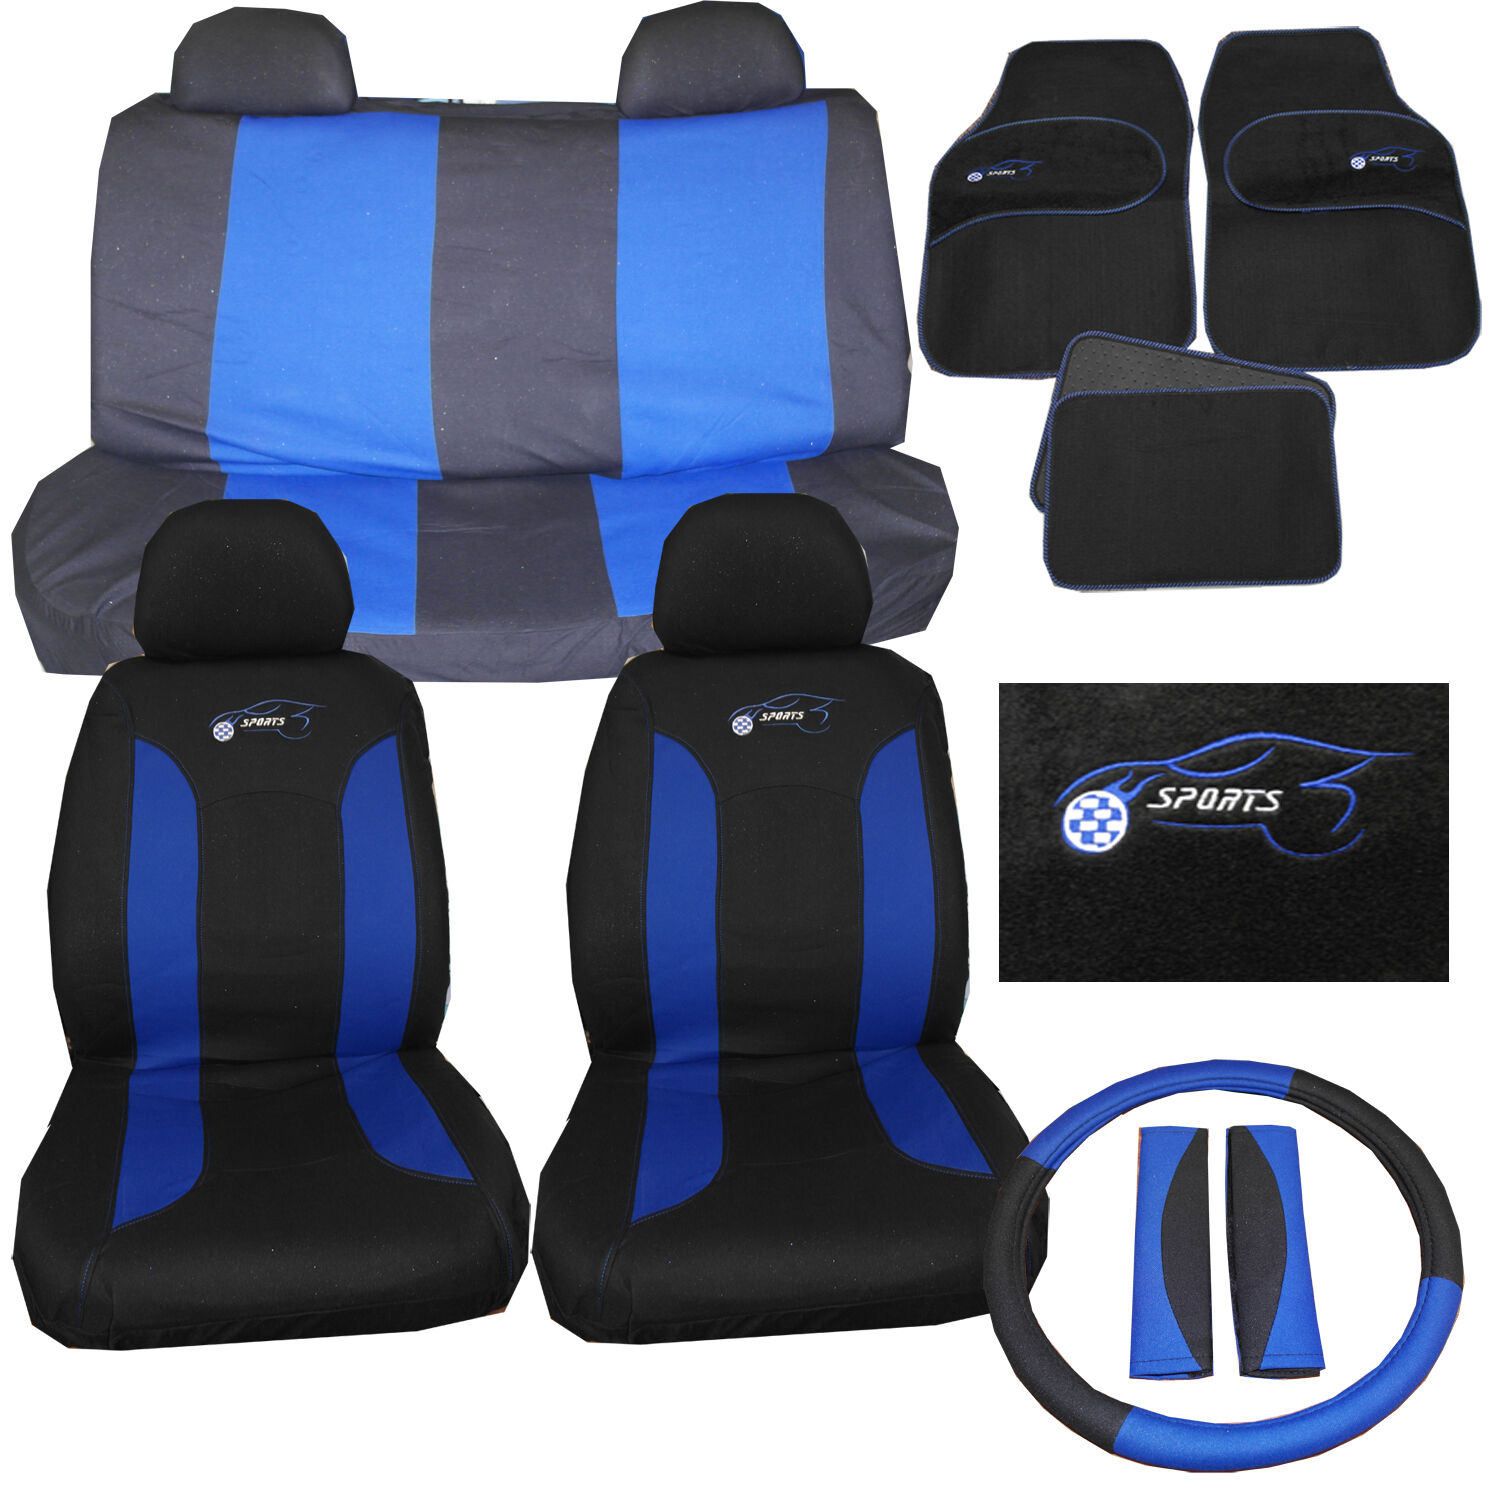 universal car seat cover set 15 pc sports logo blue fits lexus is300 is300h for sale. Black Bedroom Furniture Sets. Home Design Ideas